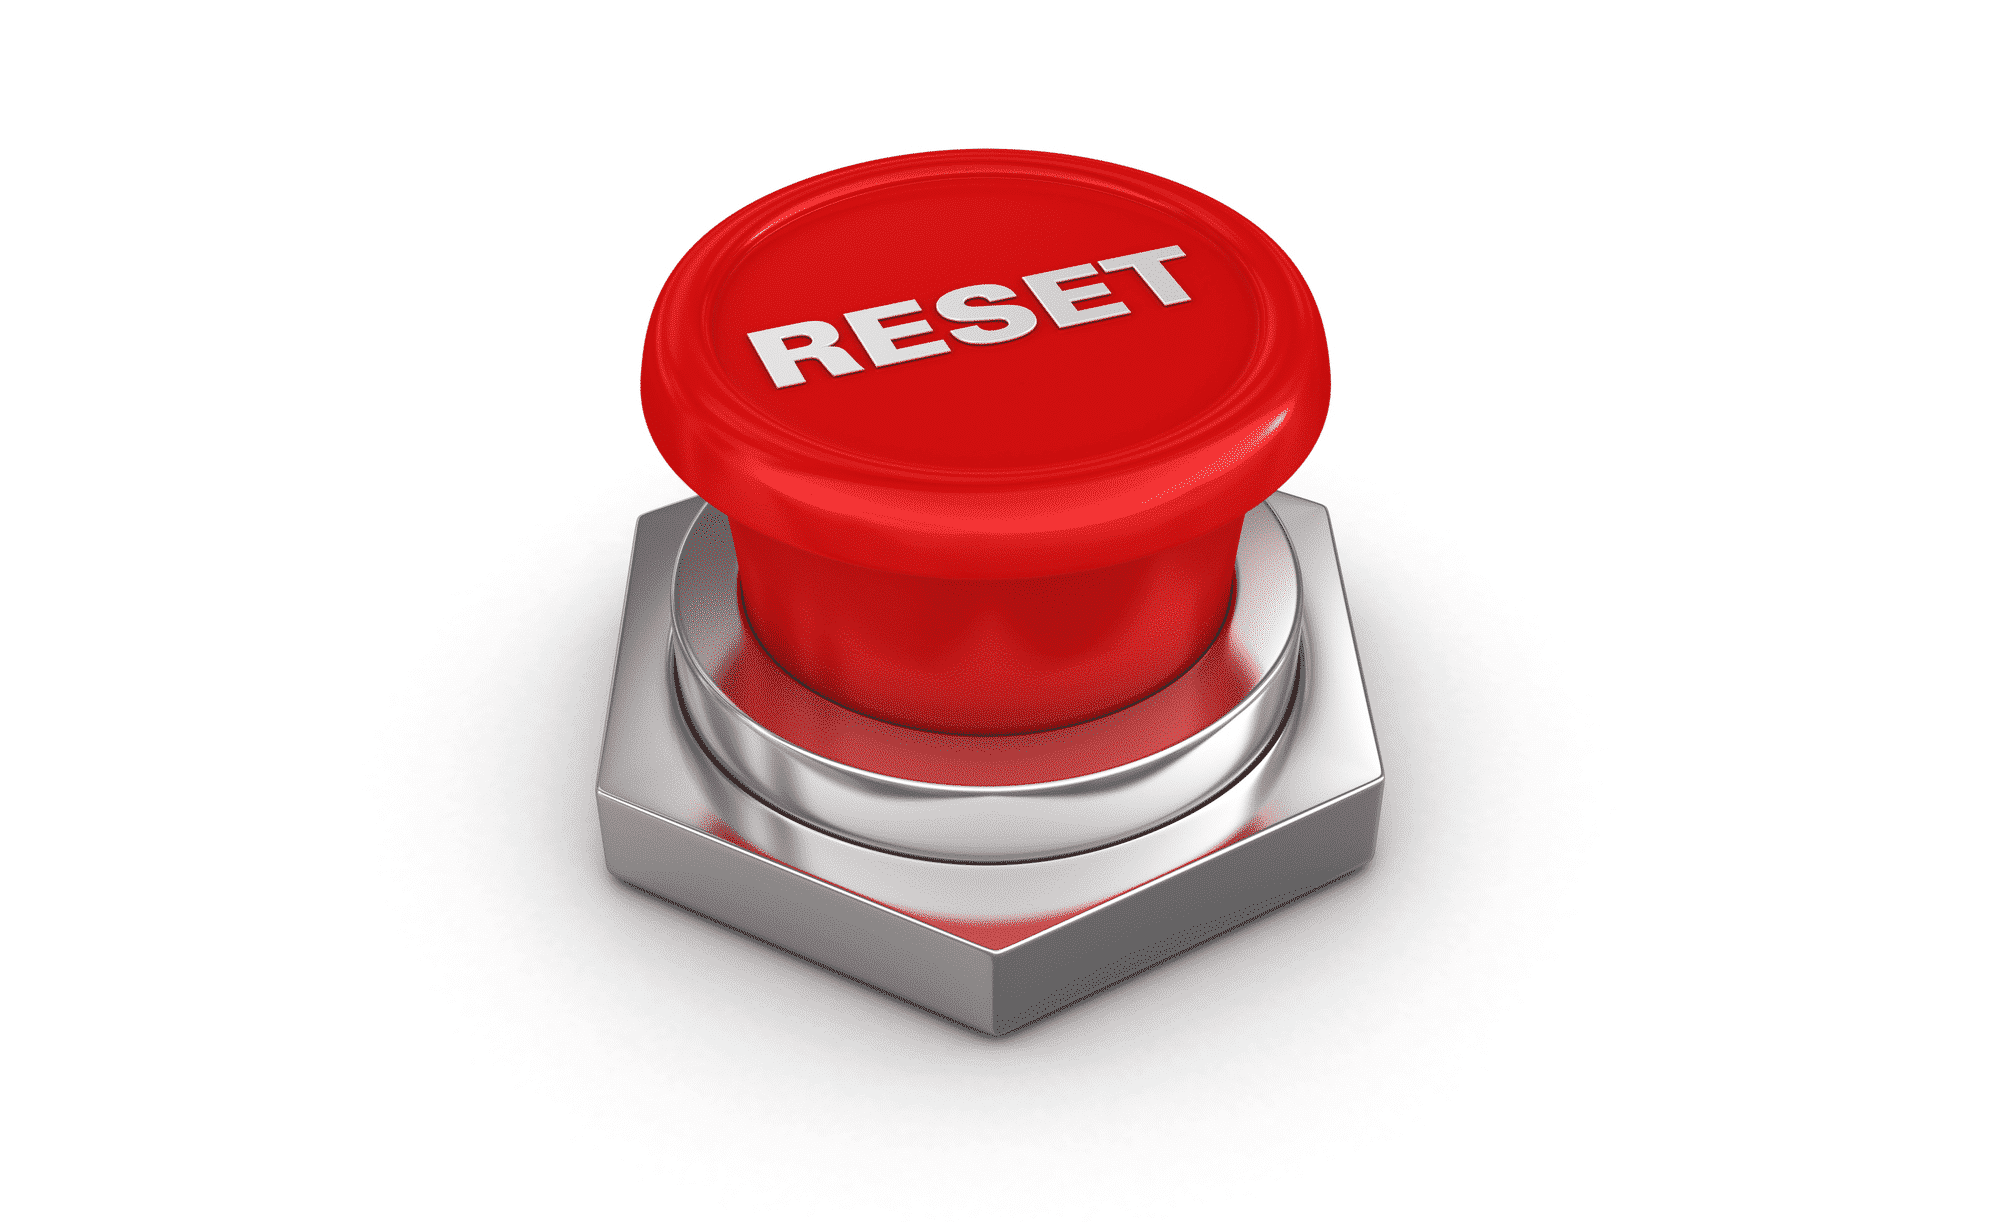 how to reset network settings in windows 10 4684679 12 9eda2349119d48cd829ab2db5f3e3be7